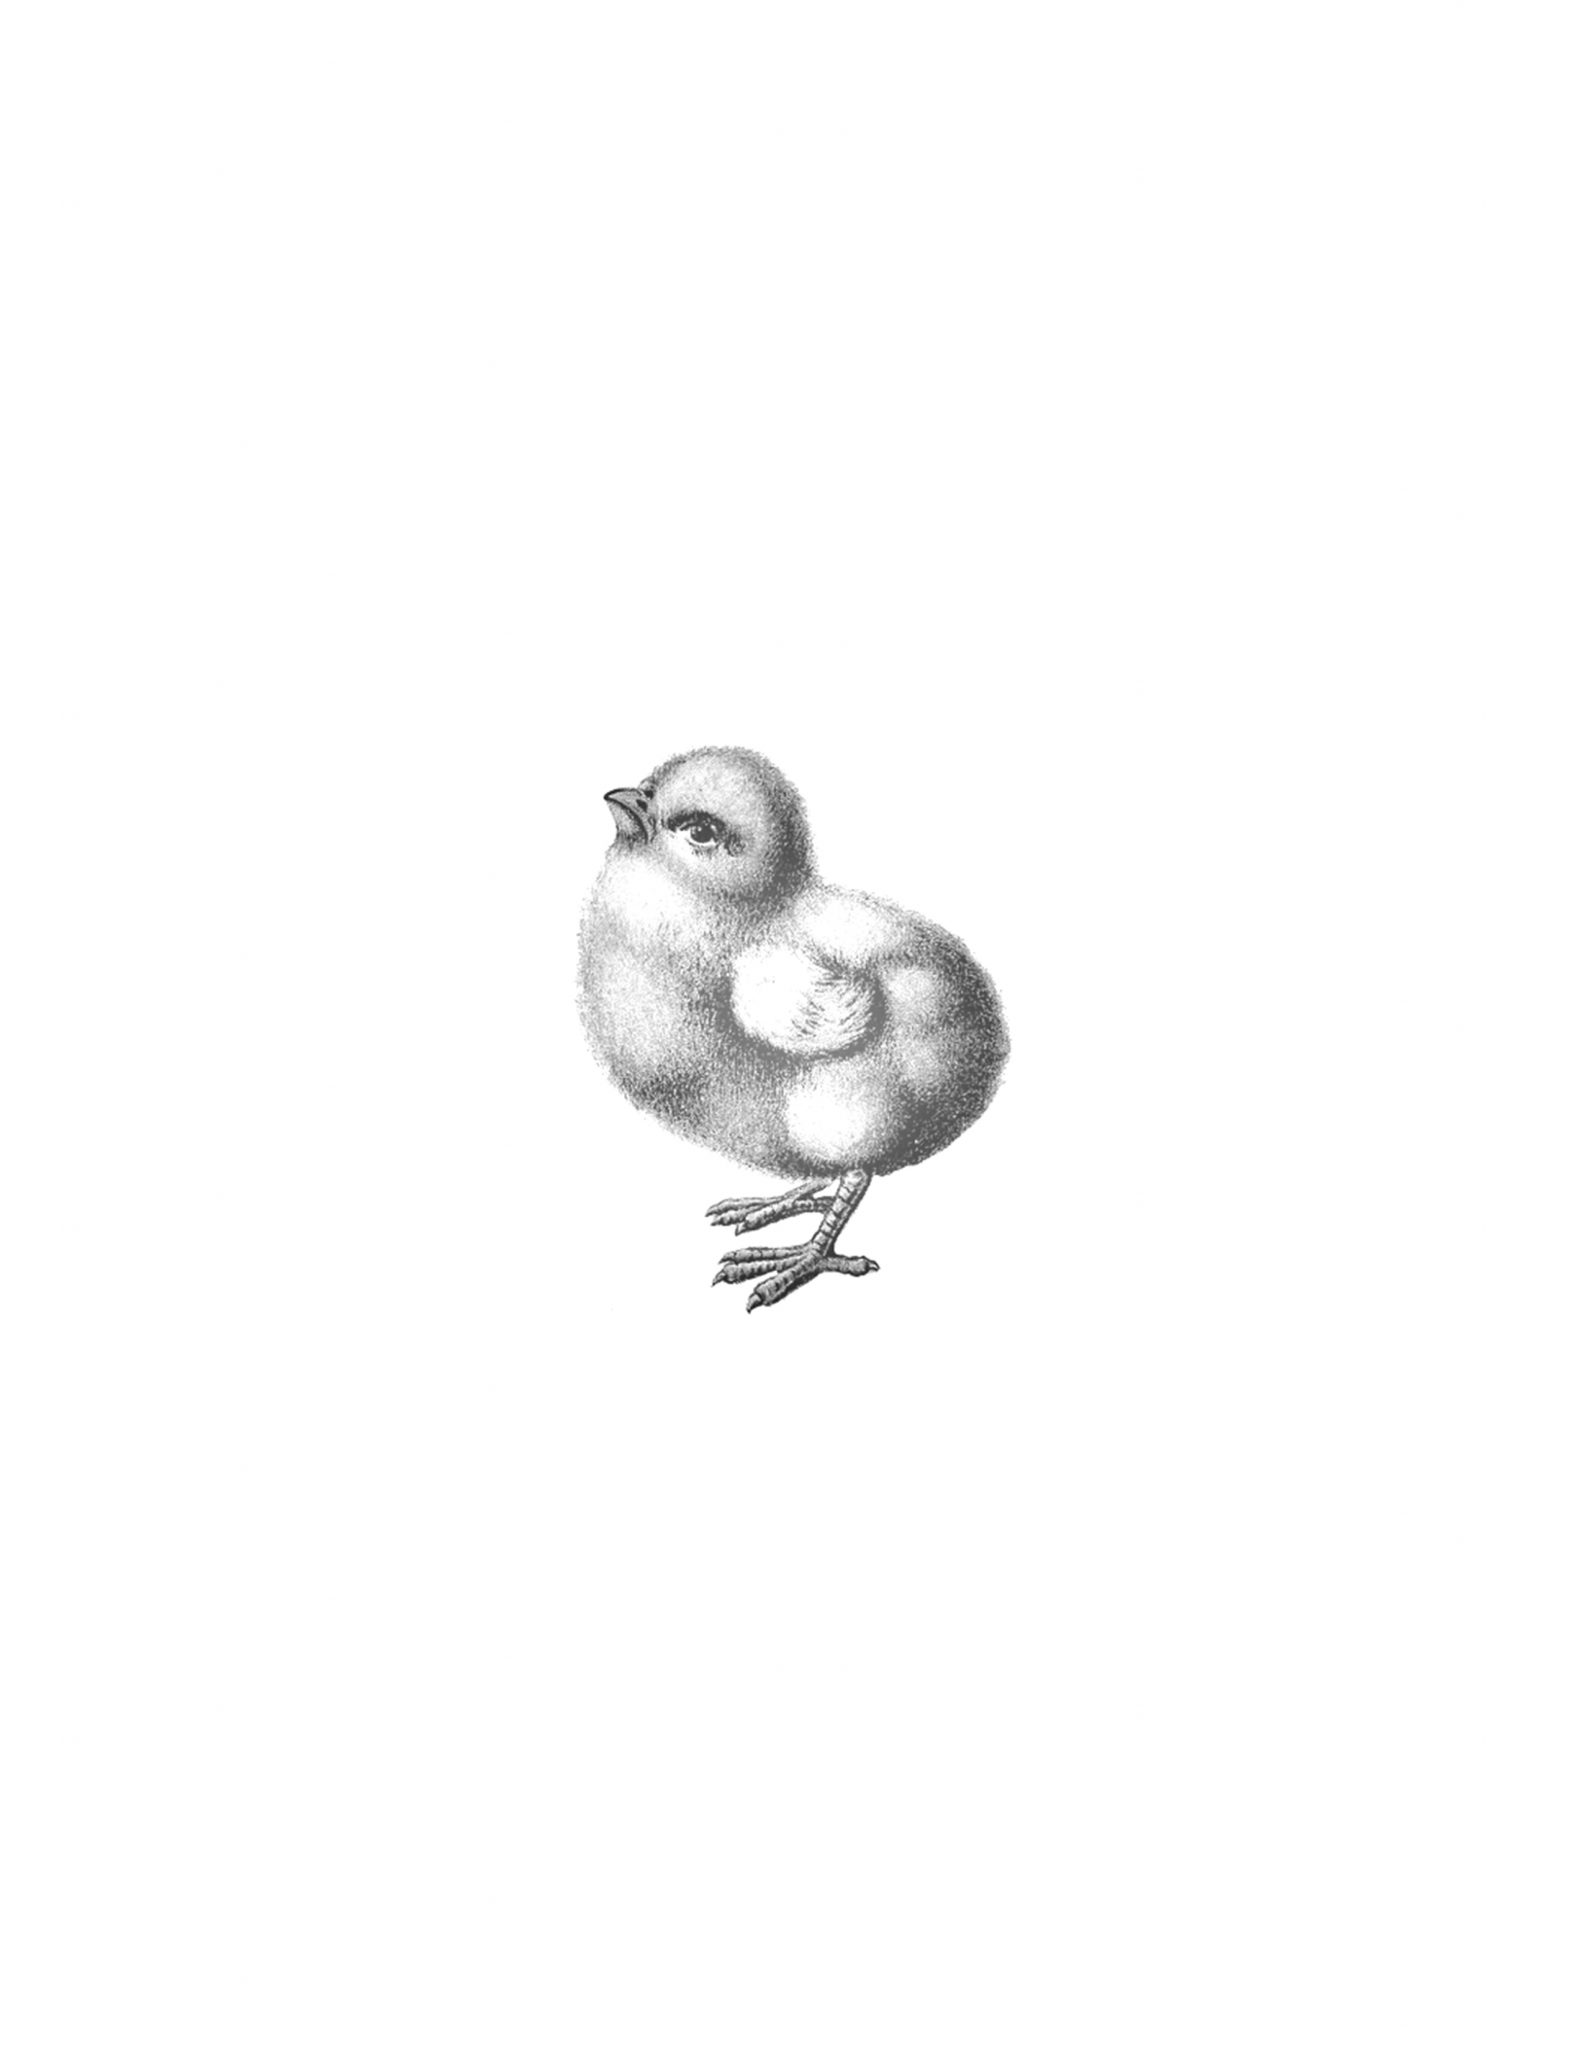 A simple sketch of a baby chick is a subtle nod to the Easter holiday. Download it here, along with 29 other free Easter printables.